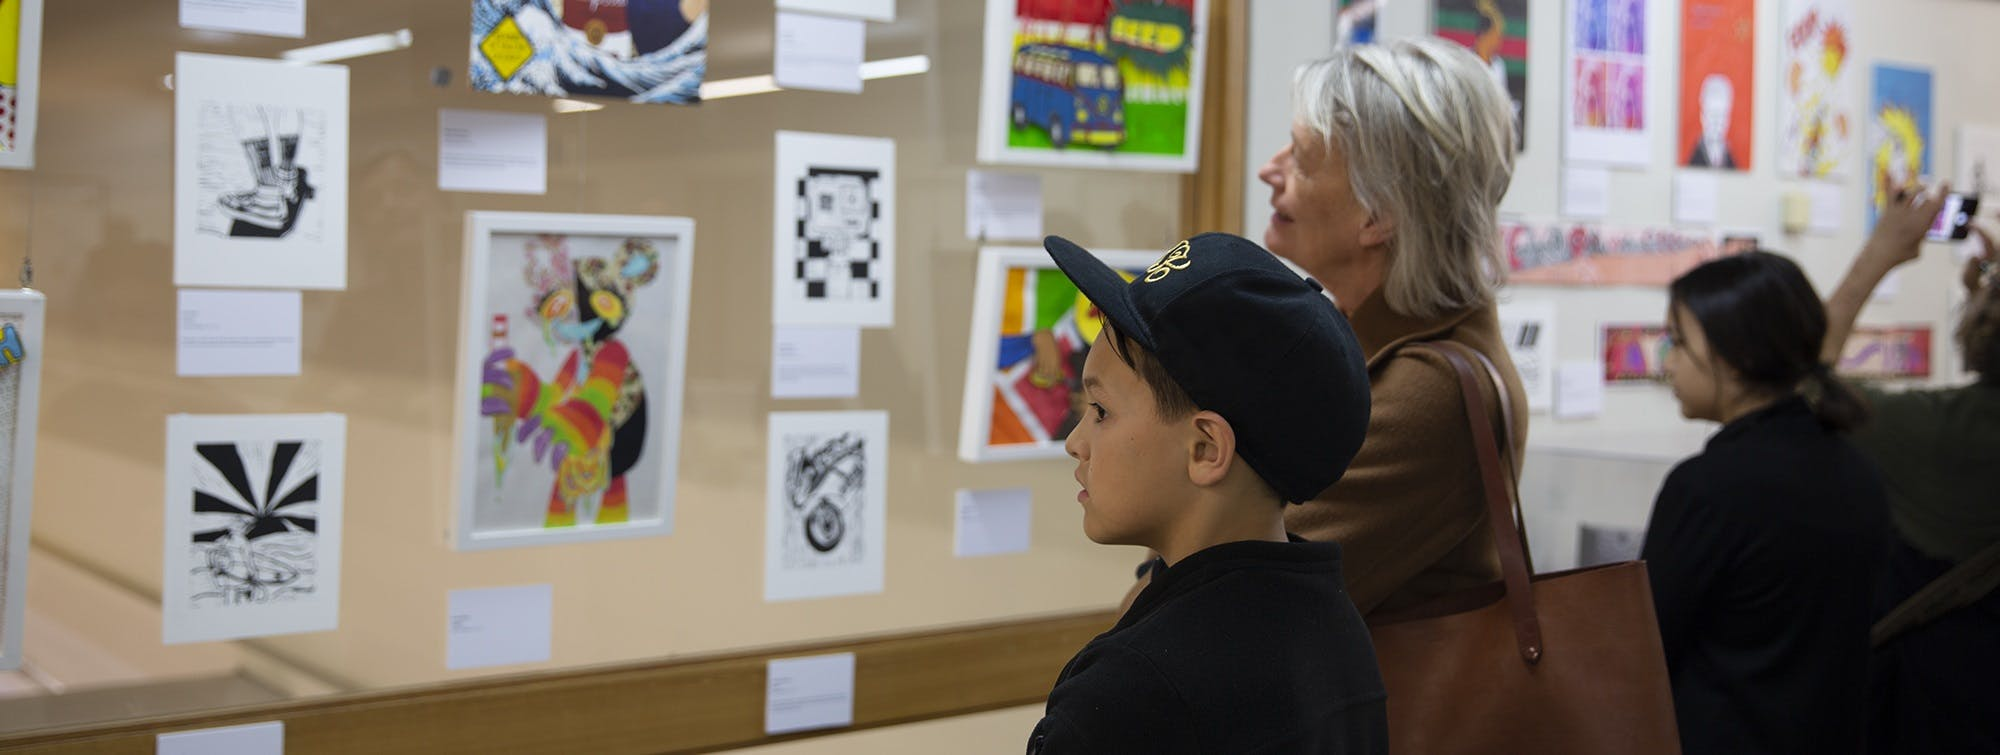 youth art prize 2019, family looking at artworks